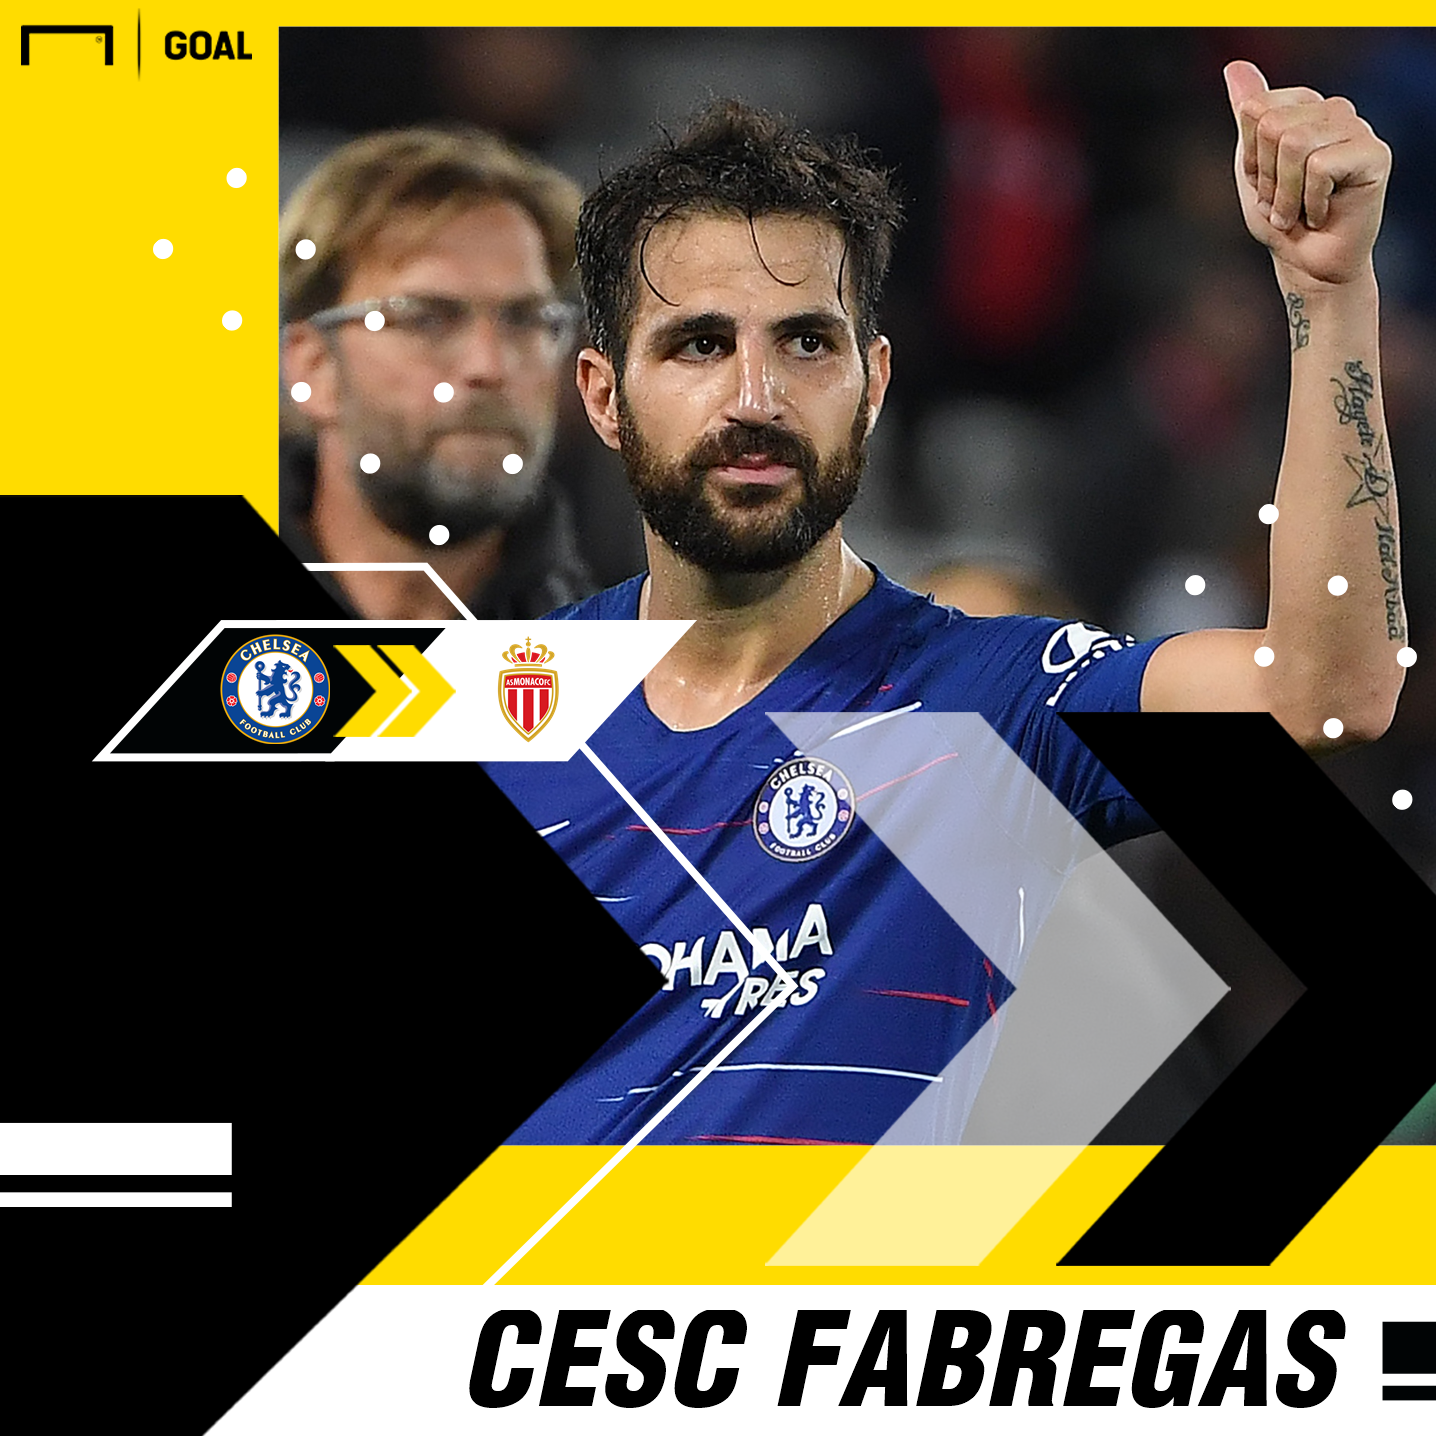 Monaco sign Chelsea's Fabregas on two-and-a-half-year deal